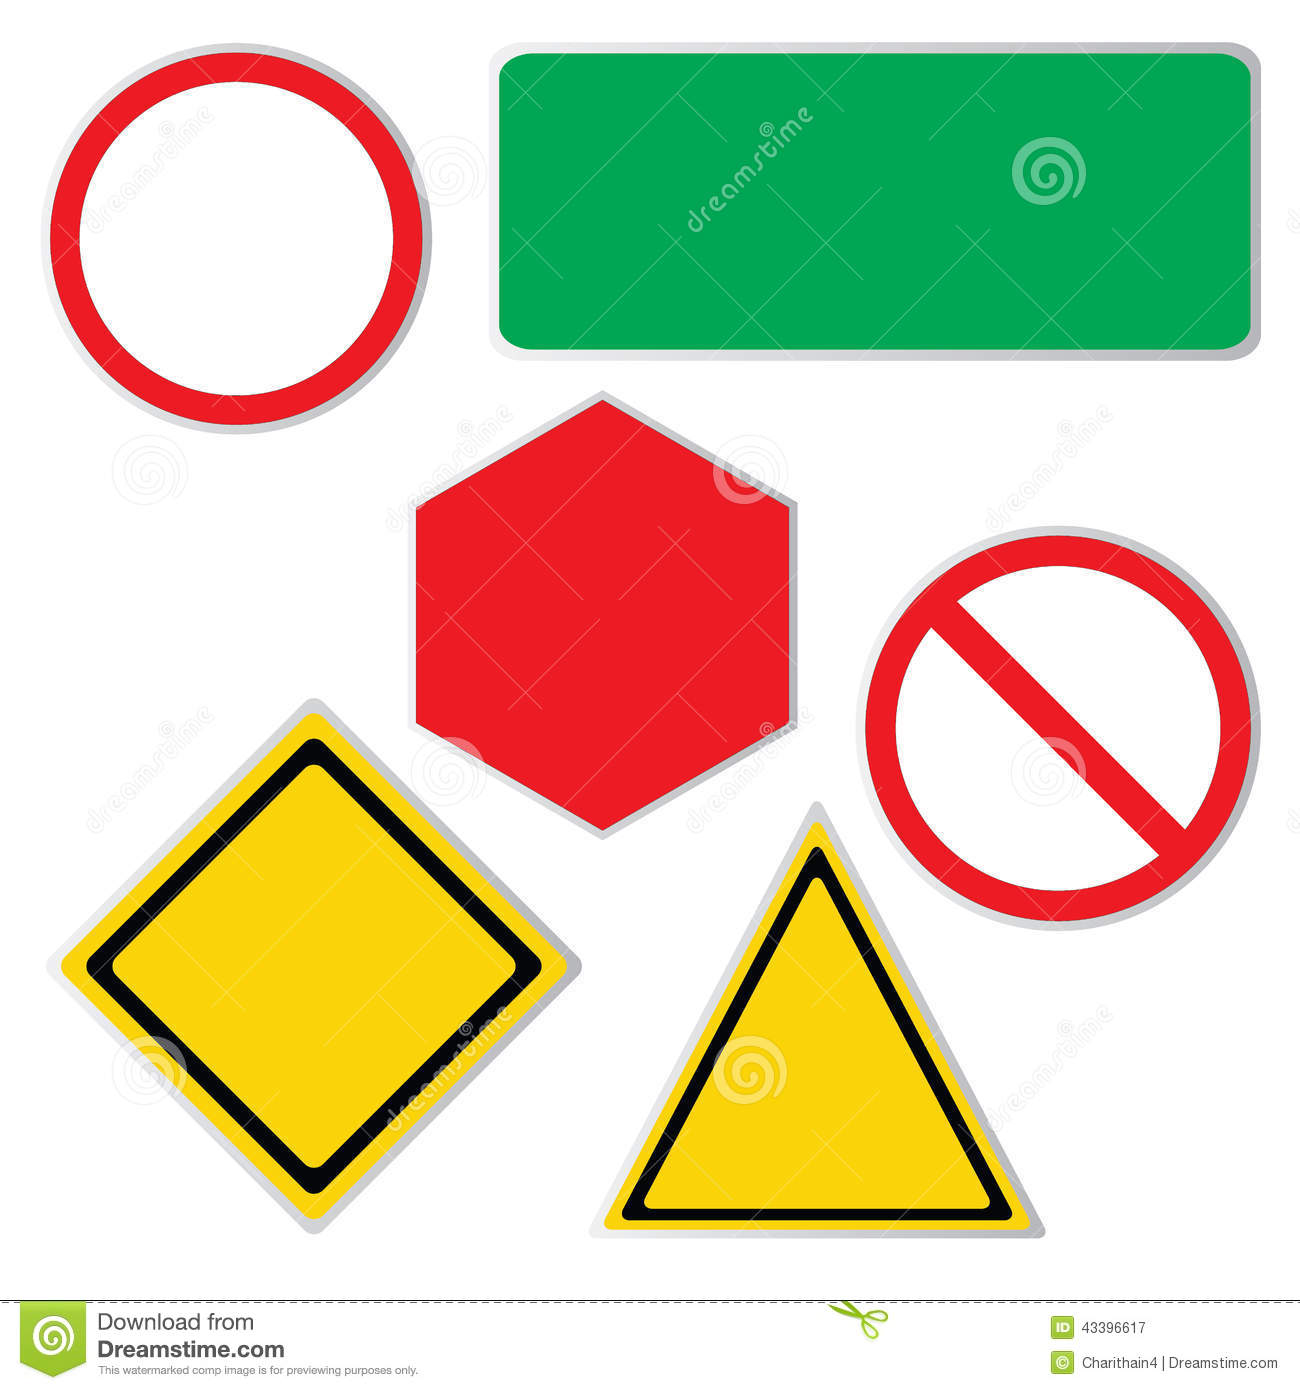 Blank road sign icons